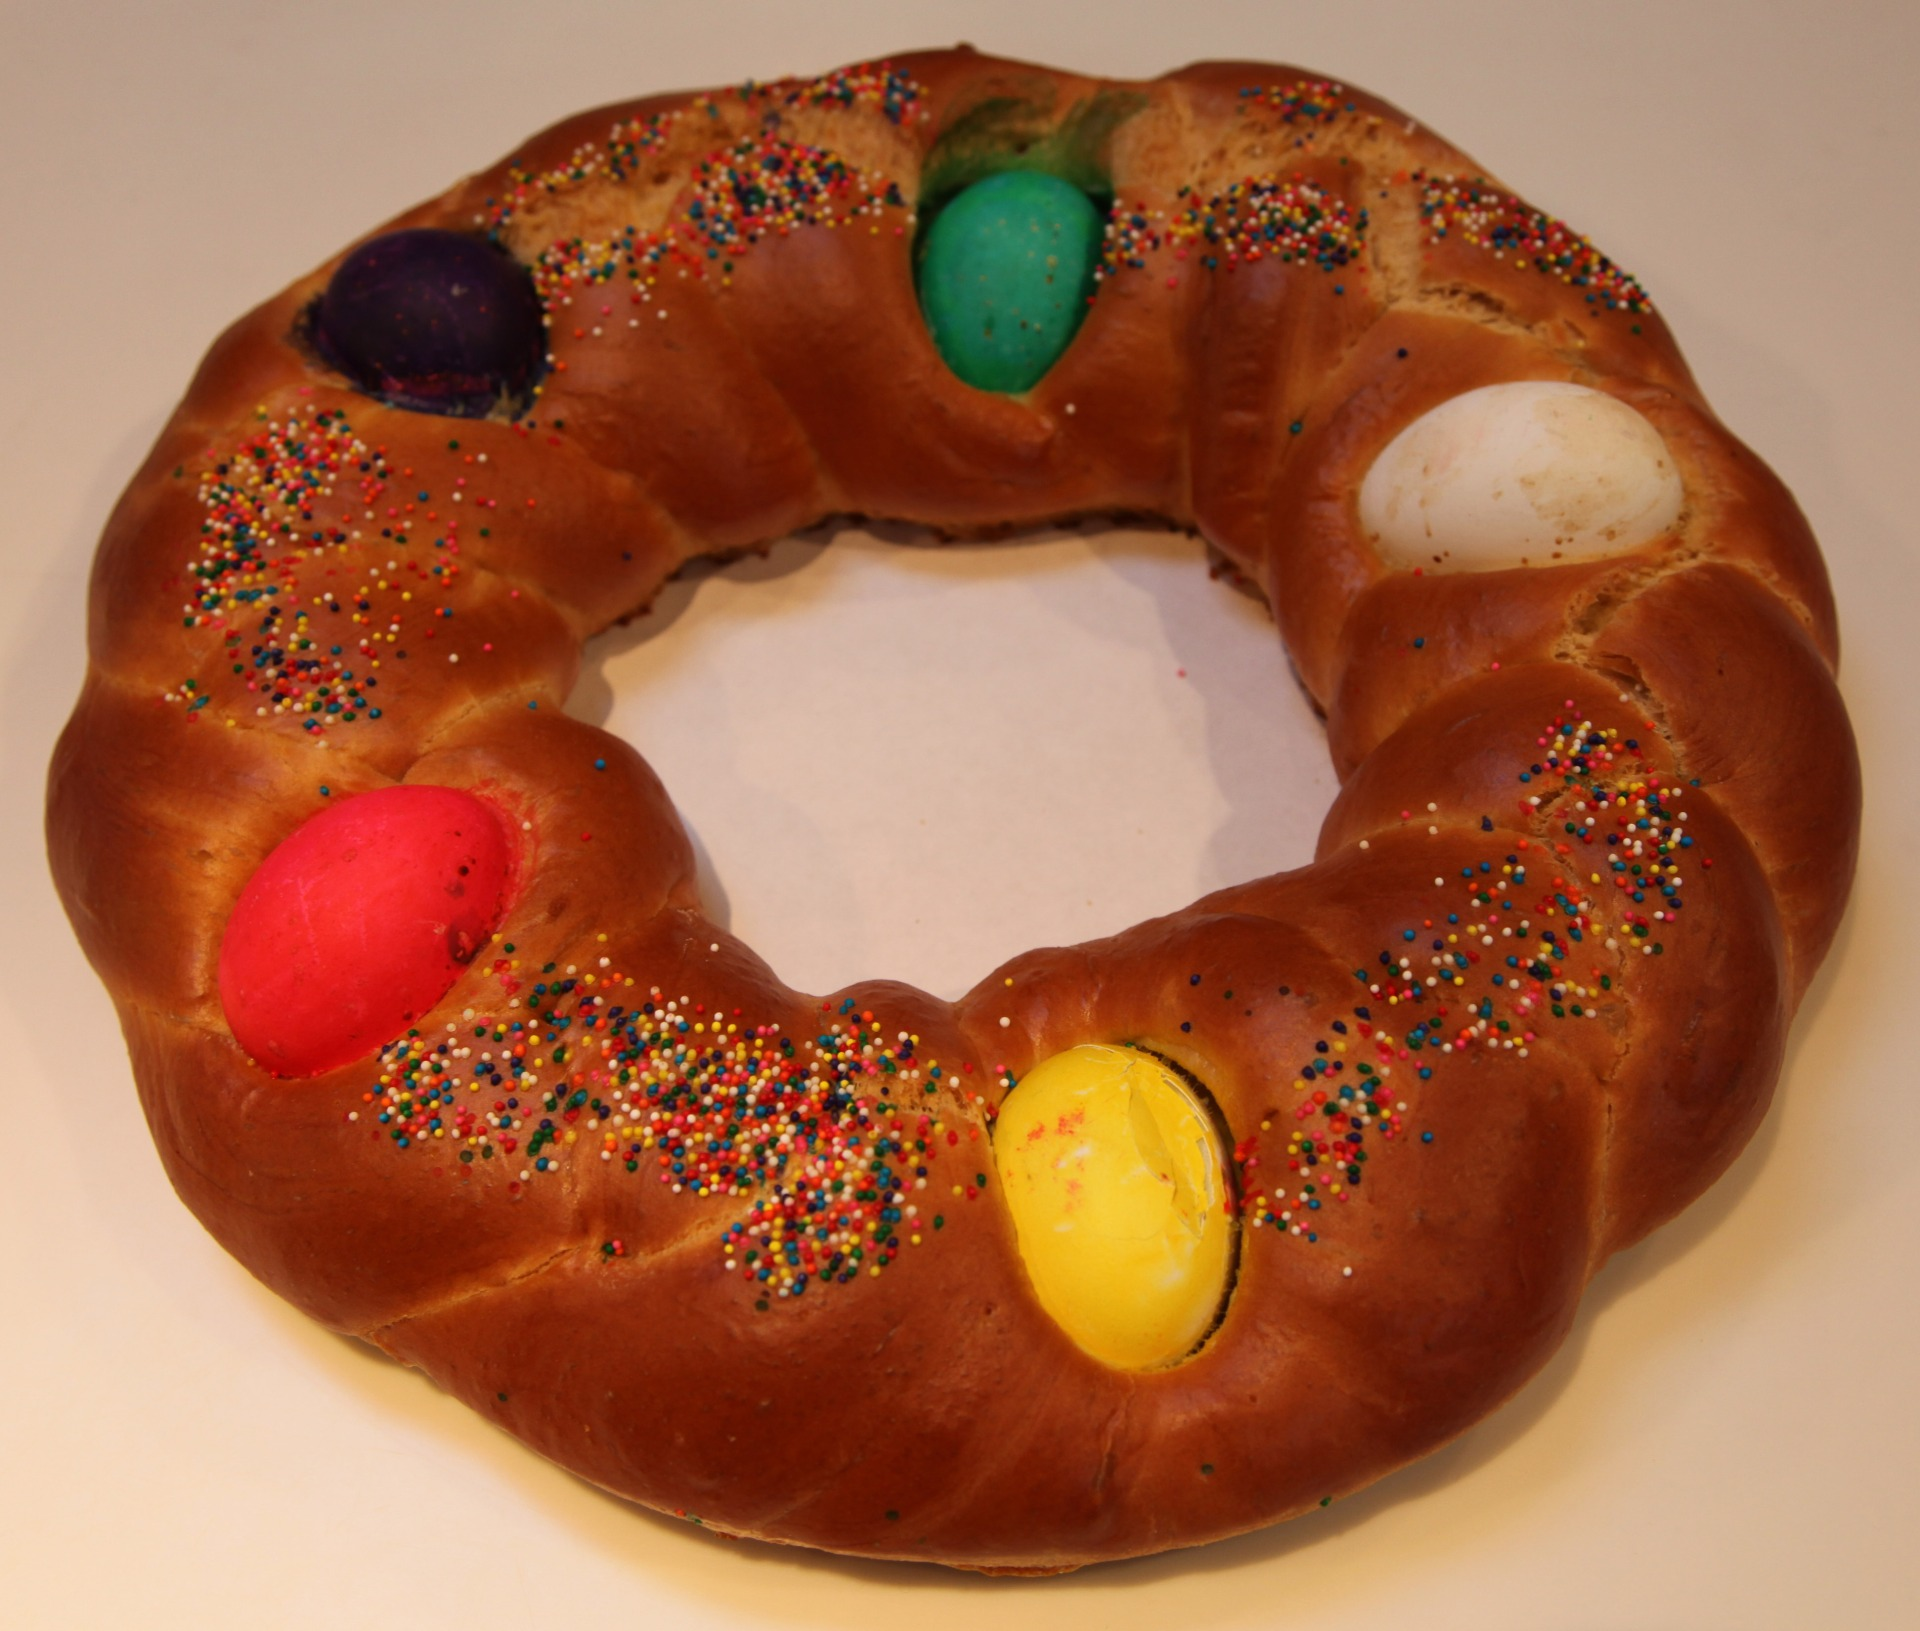 Tsoureki - Easter - Eggs - Bread - Between the Tines